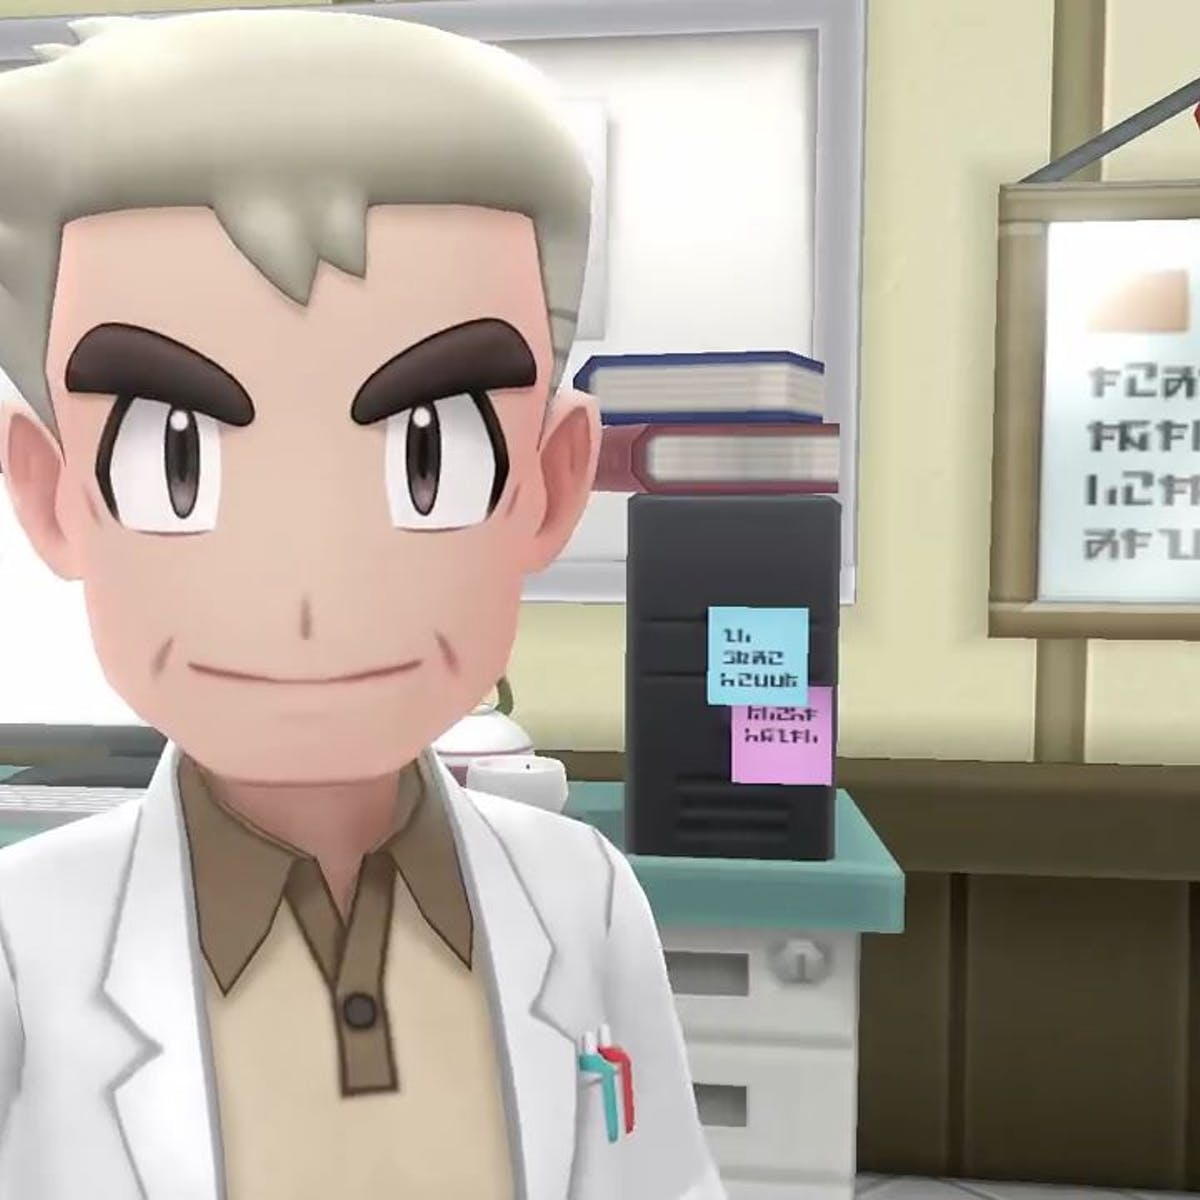 Pokémon: Let's Go': How to Check IVs in the New Nintendo Switch Game